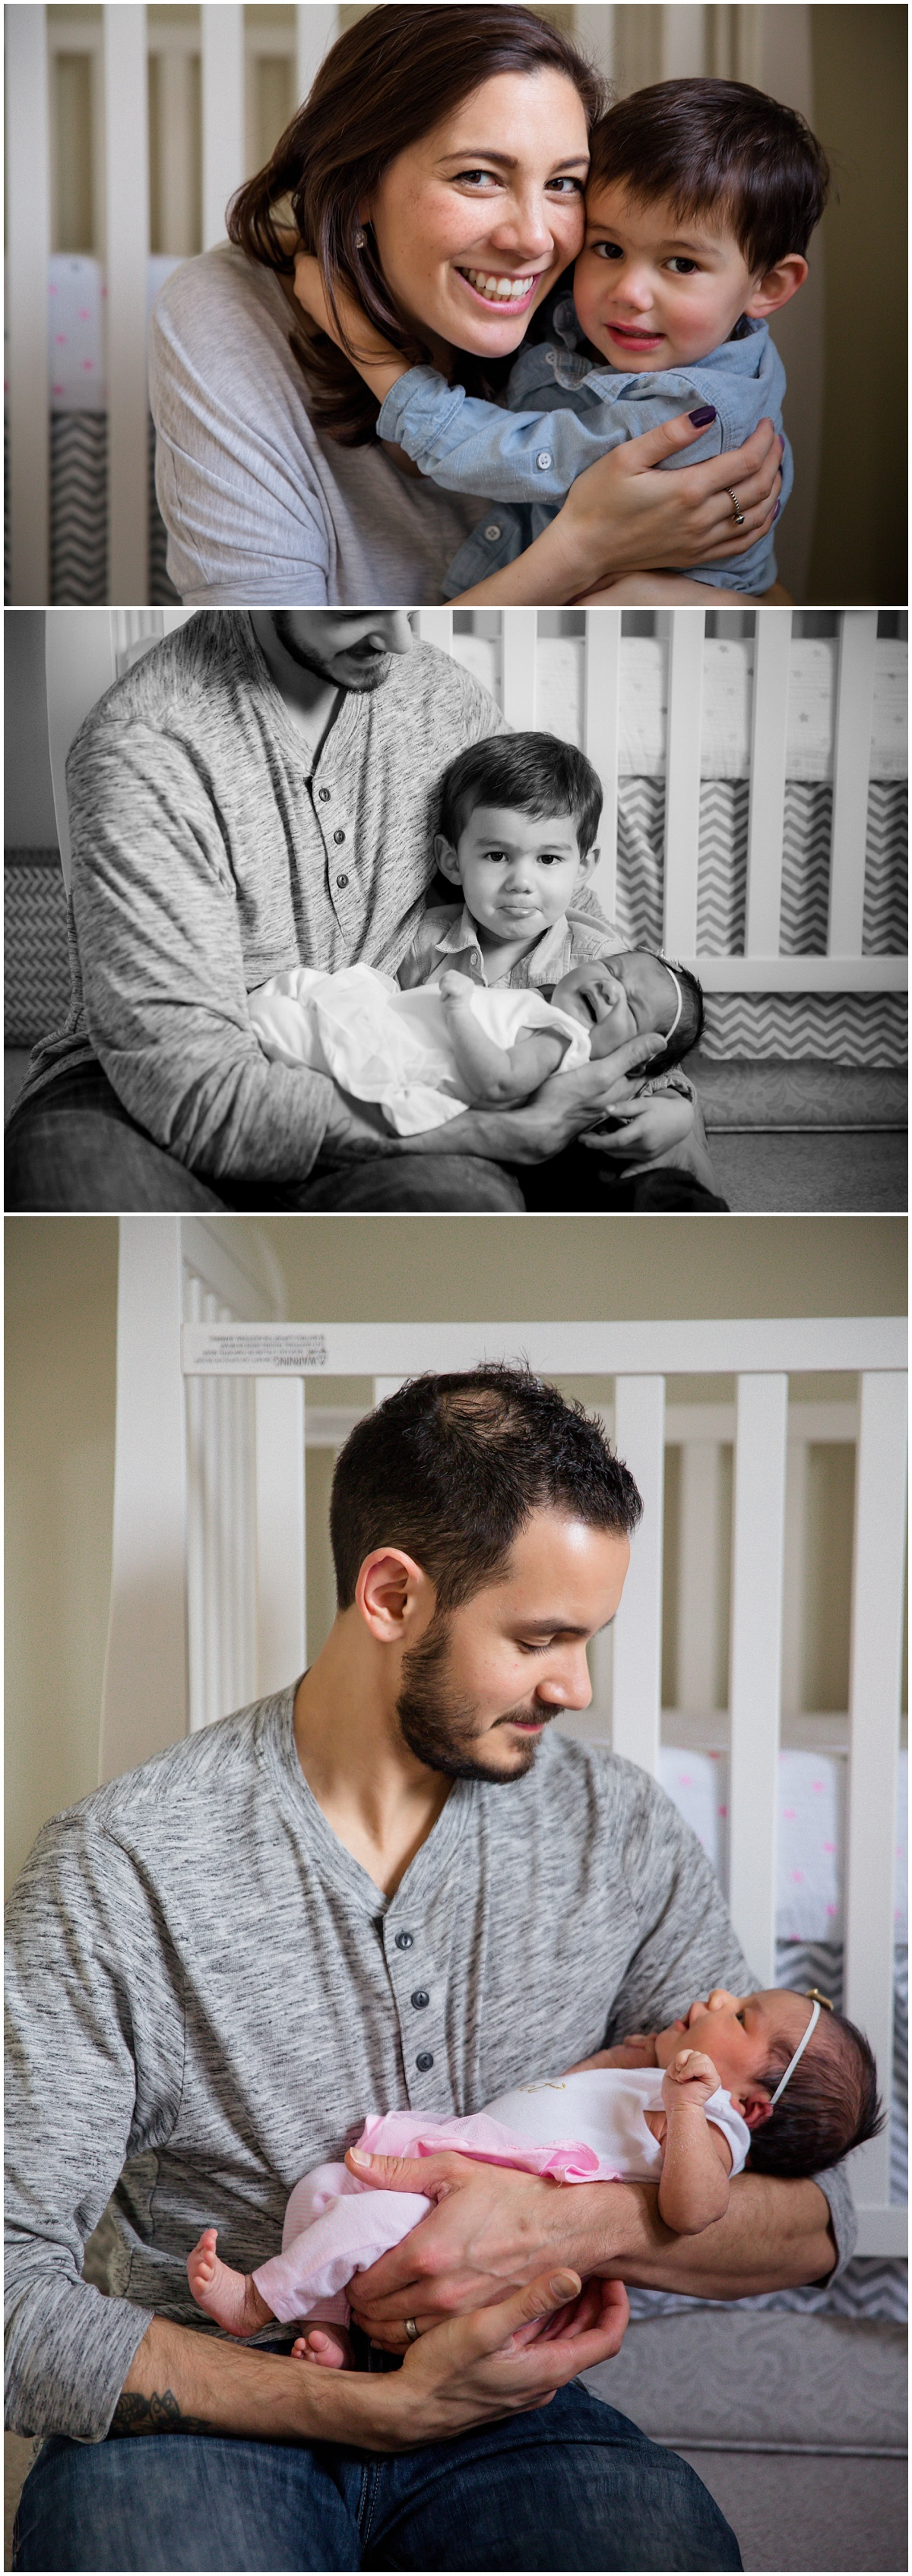 Amazing Day Photography - Lifestyle Newborn Session - Langley Newborn Photographer (6).jpg